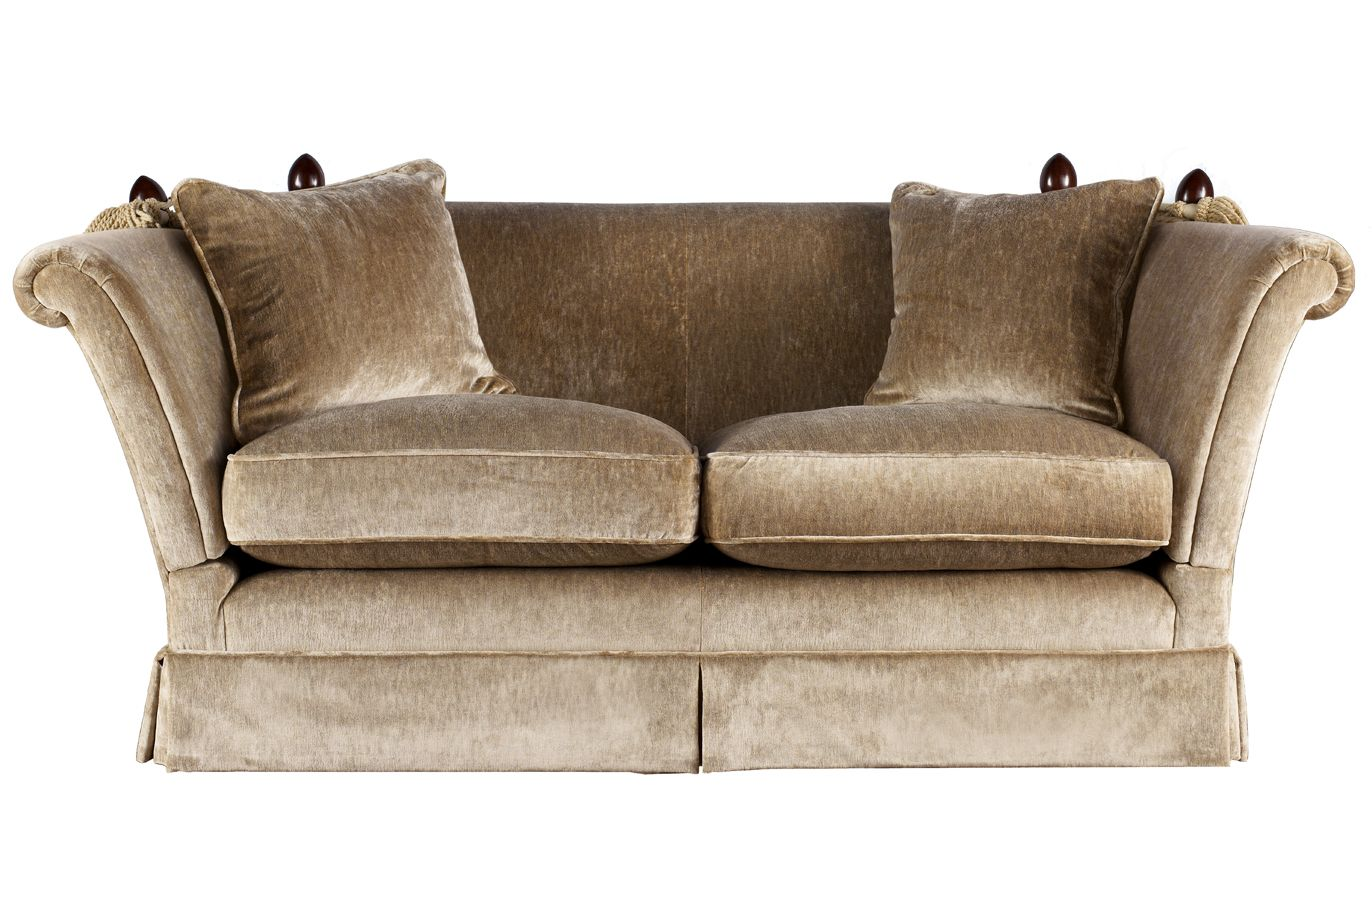 two couches langham upholstered 2 seater sofa laura ashley made to order house interior. Black Bedroom Furniture Sets. Home Design Ideas